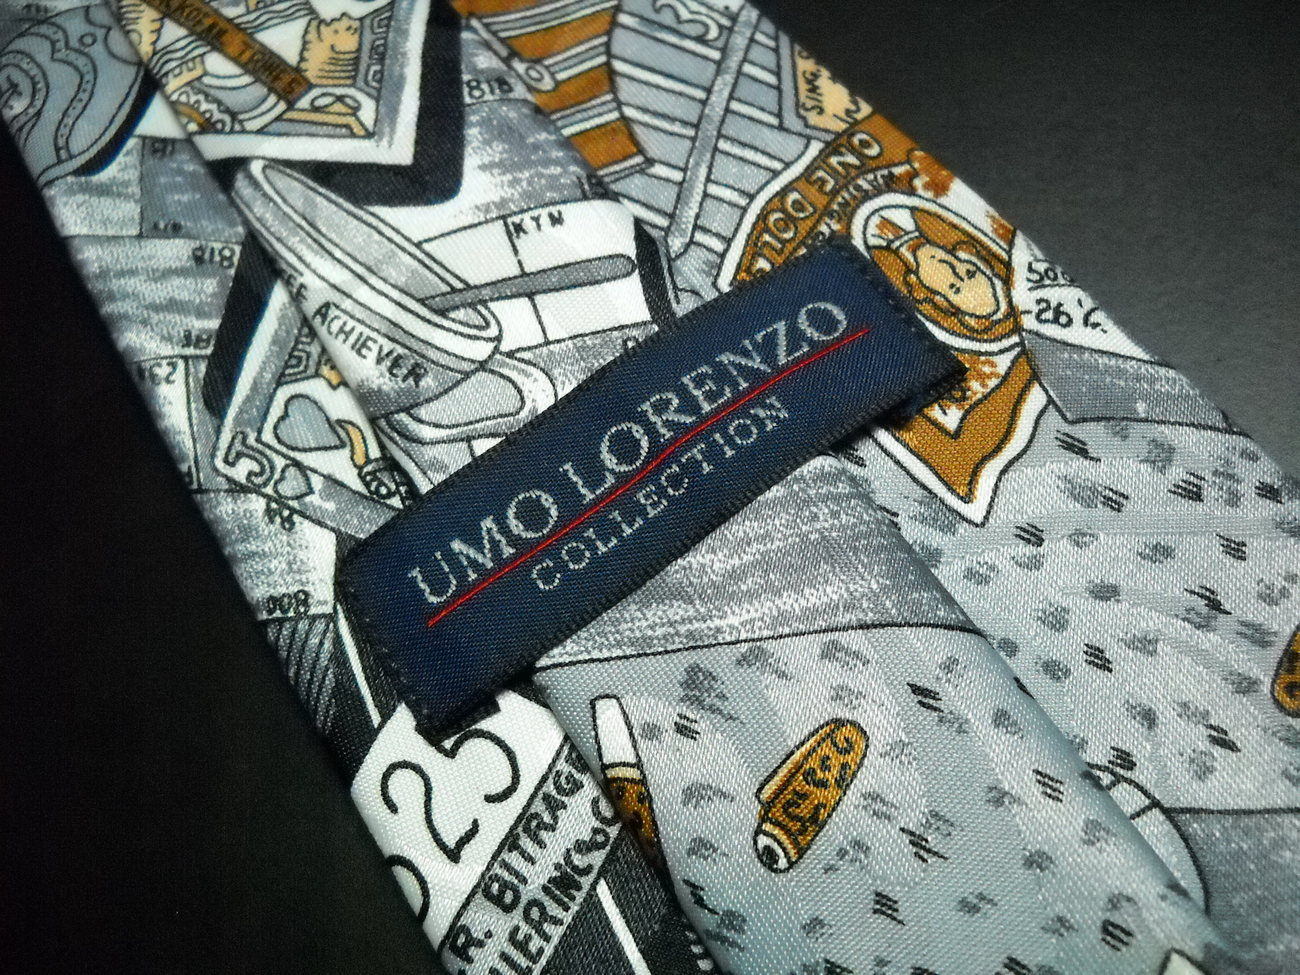 Umo Lorenzo Neck Tie Stock Exchange Theme Greys Soft Browns Buy Sell and Stress